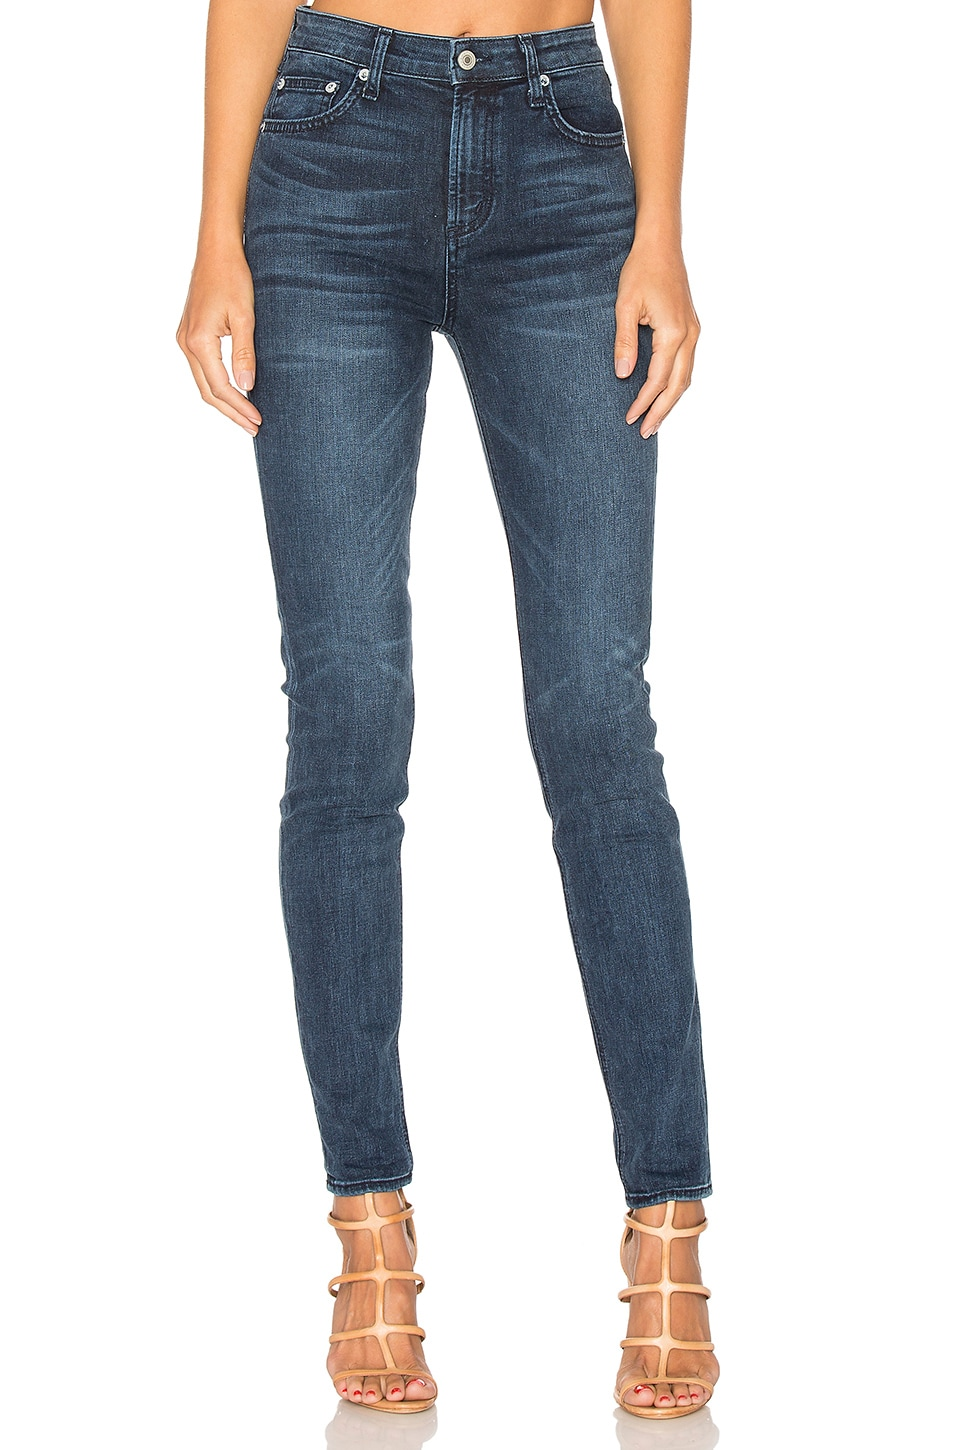 Tularosa Nora High-Rise Jean in Moscow